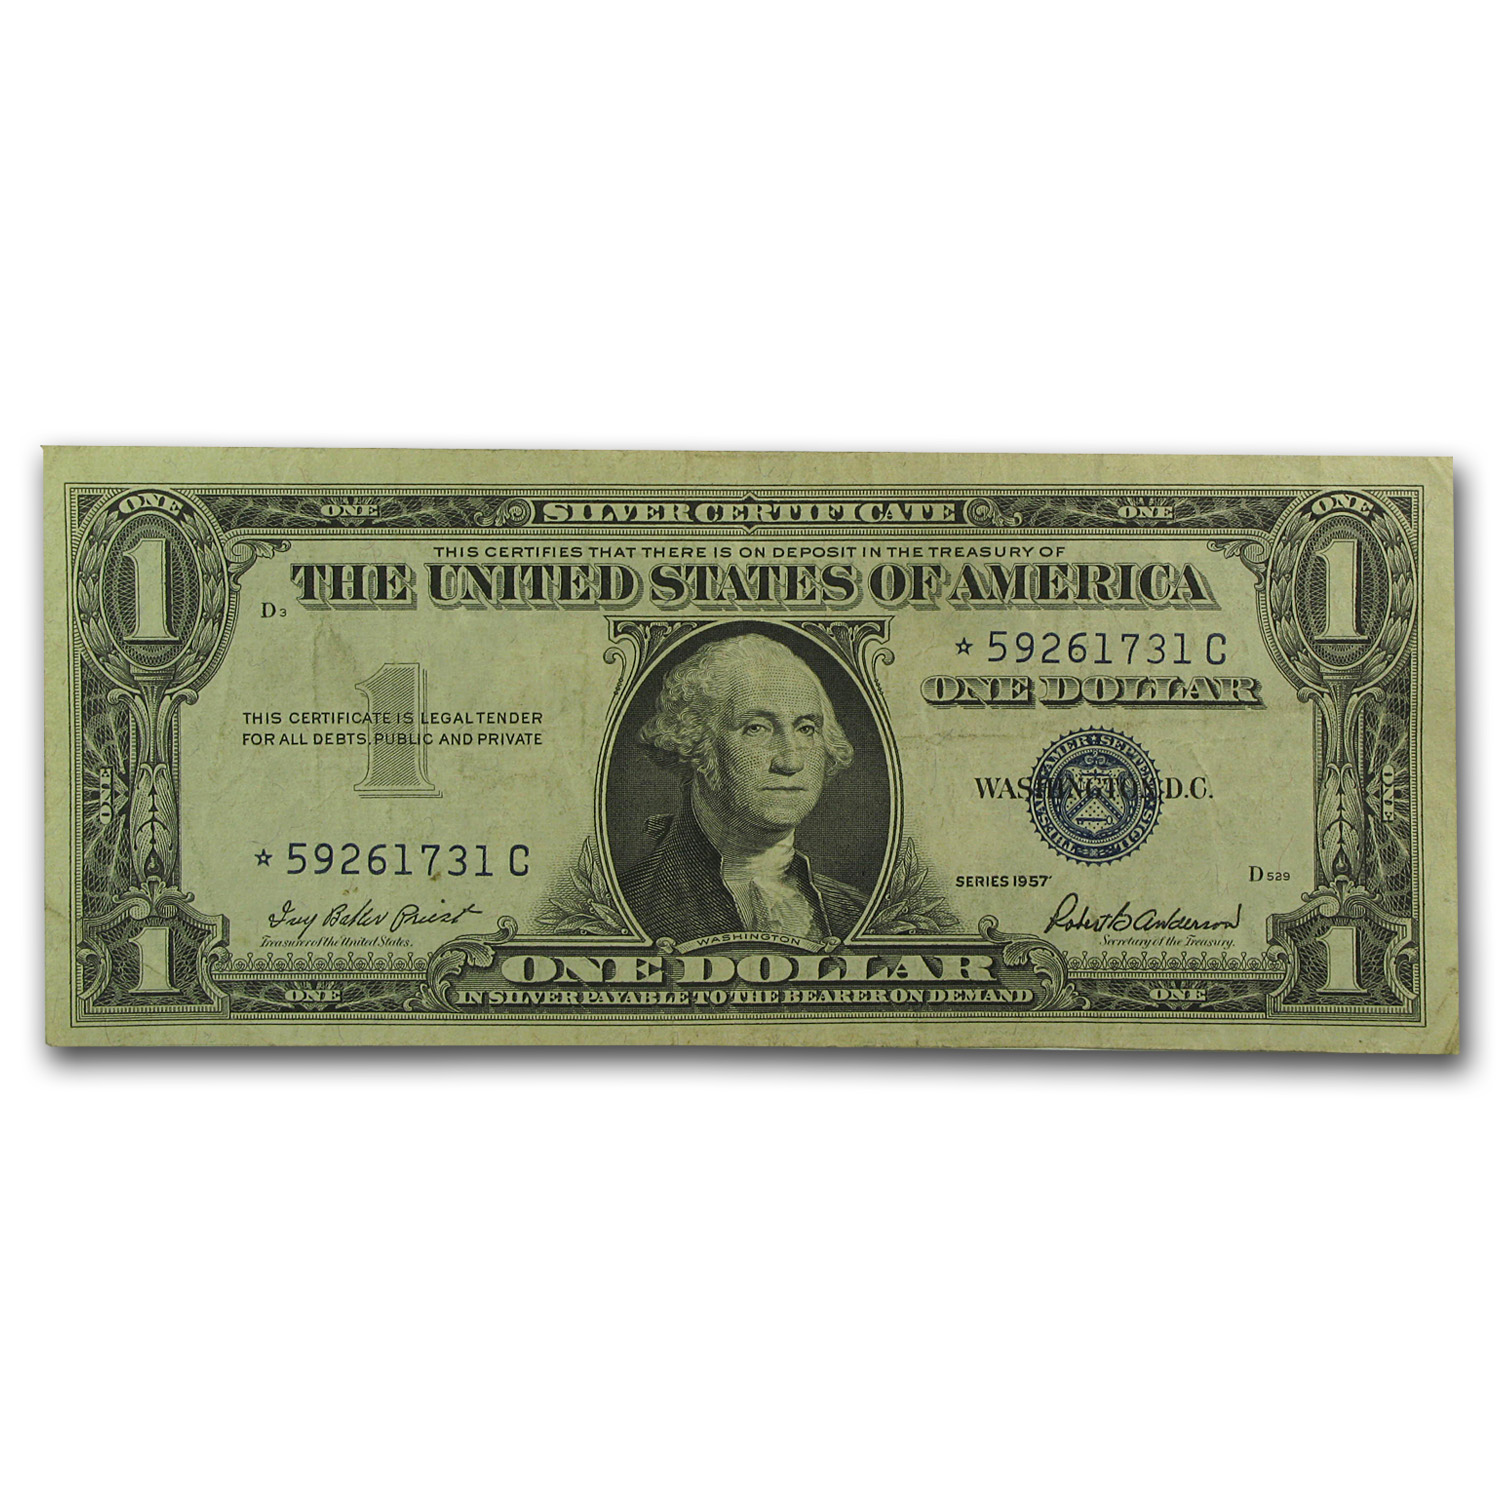 1957's* $1 Silver Certificates (VG-VF) - Star Note